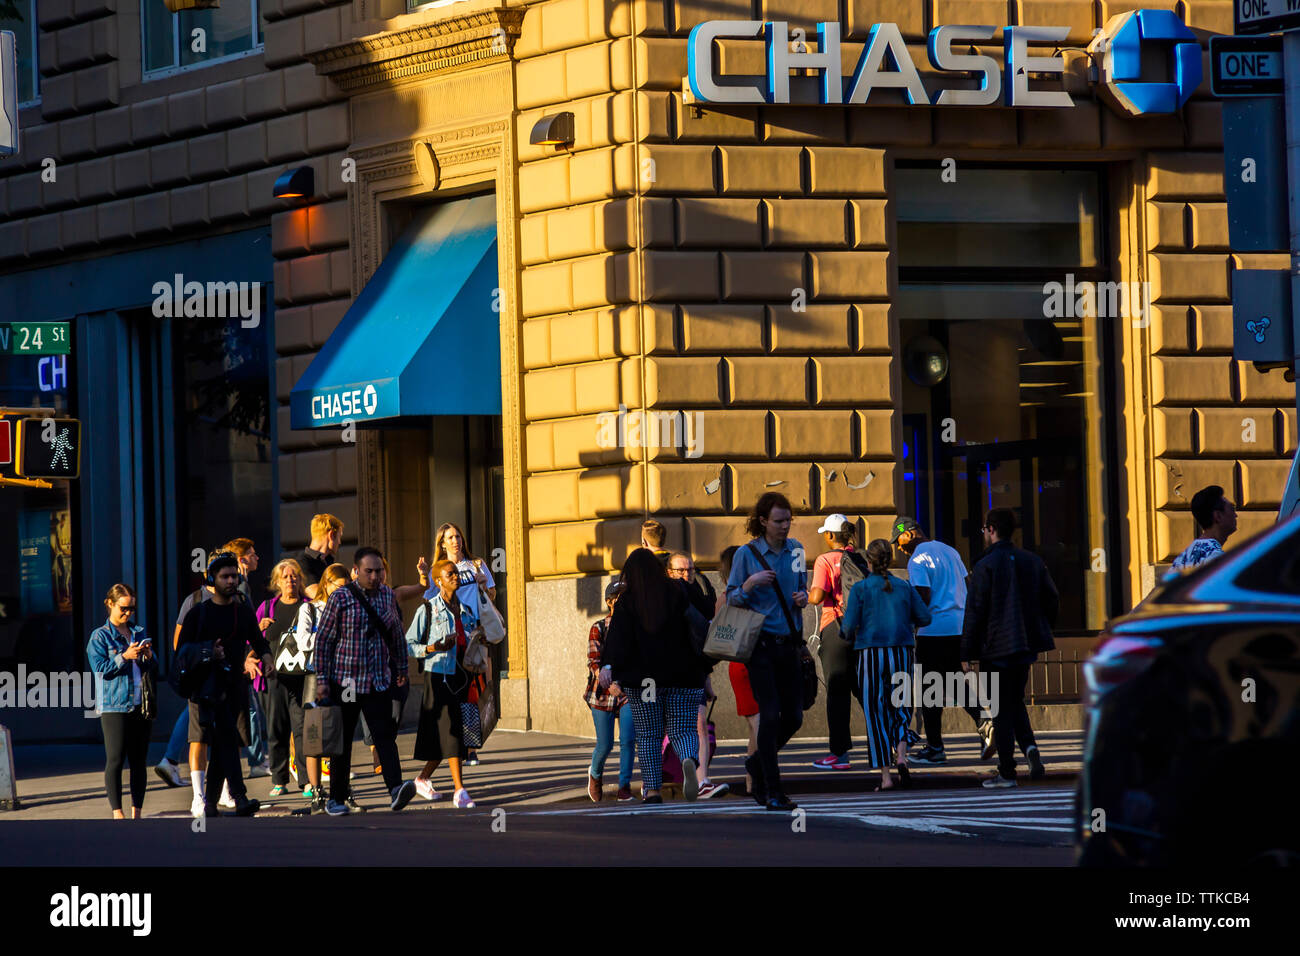 A branch of Chase bank in New York on Tuesday, June 11, 2019. (© Richard B. Levine) - Stock Image